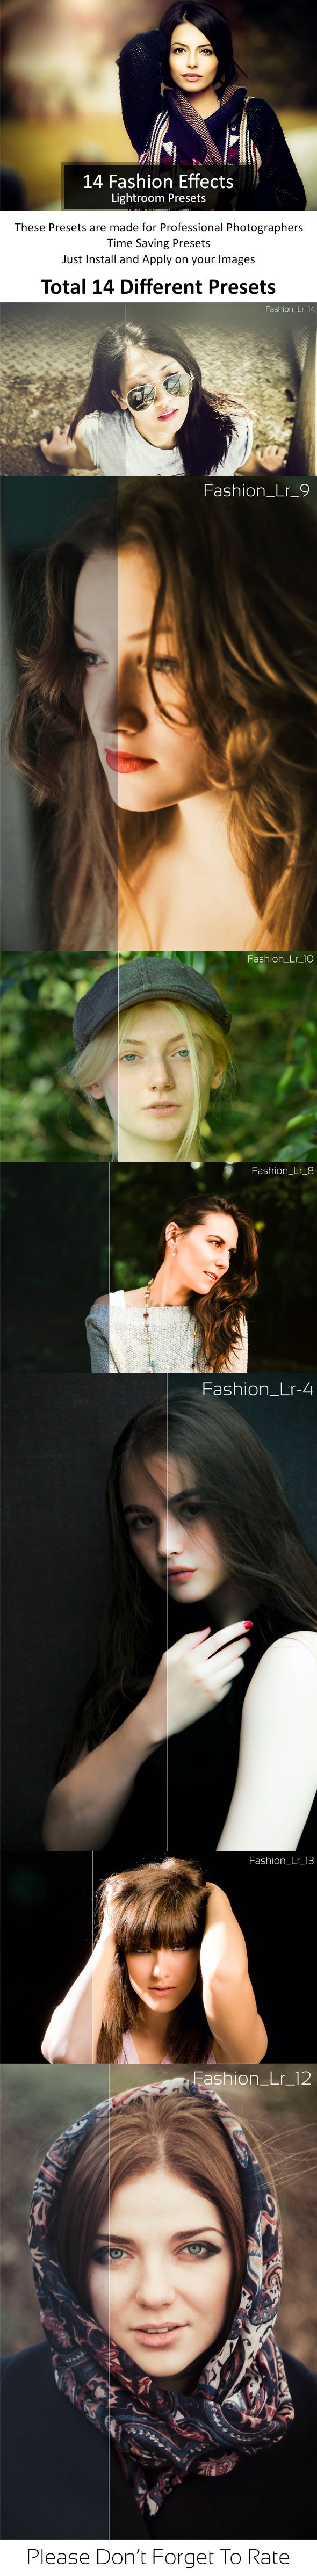 14 Fashion Lr Presets - Portrait Lightroom Presets